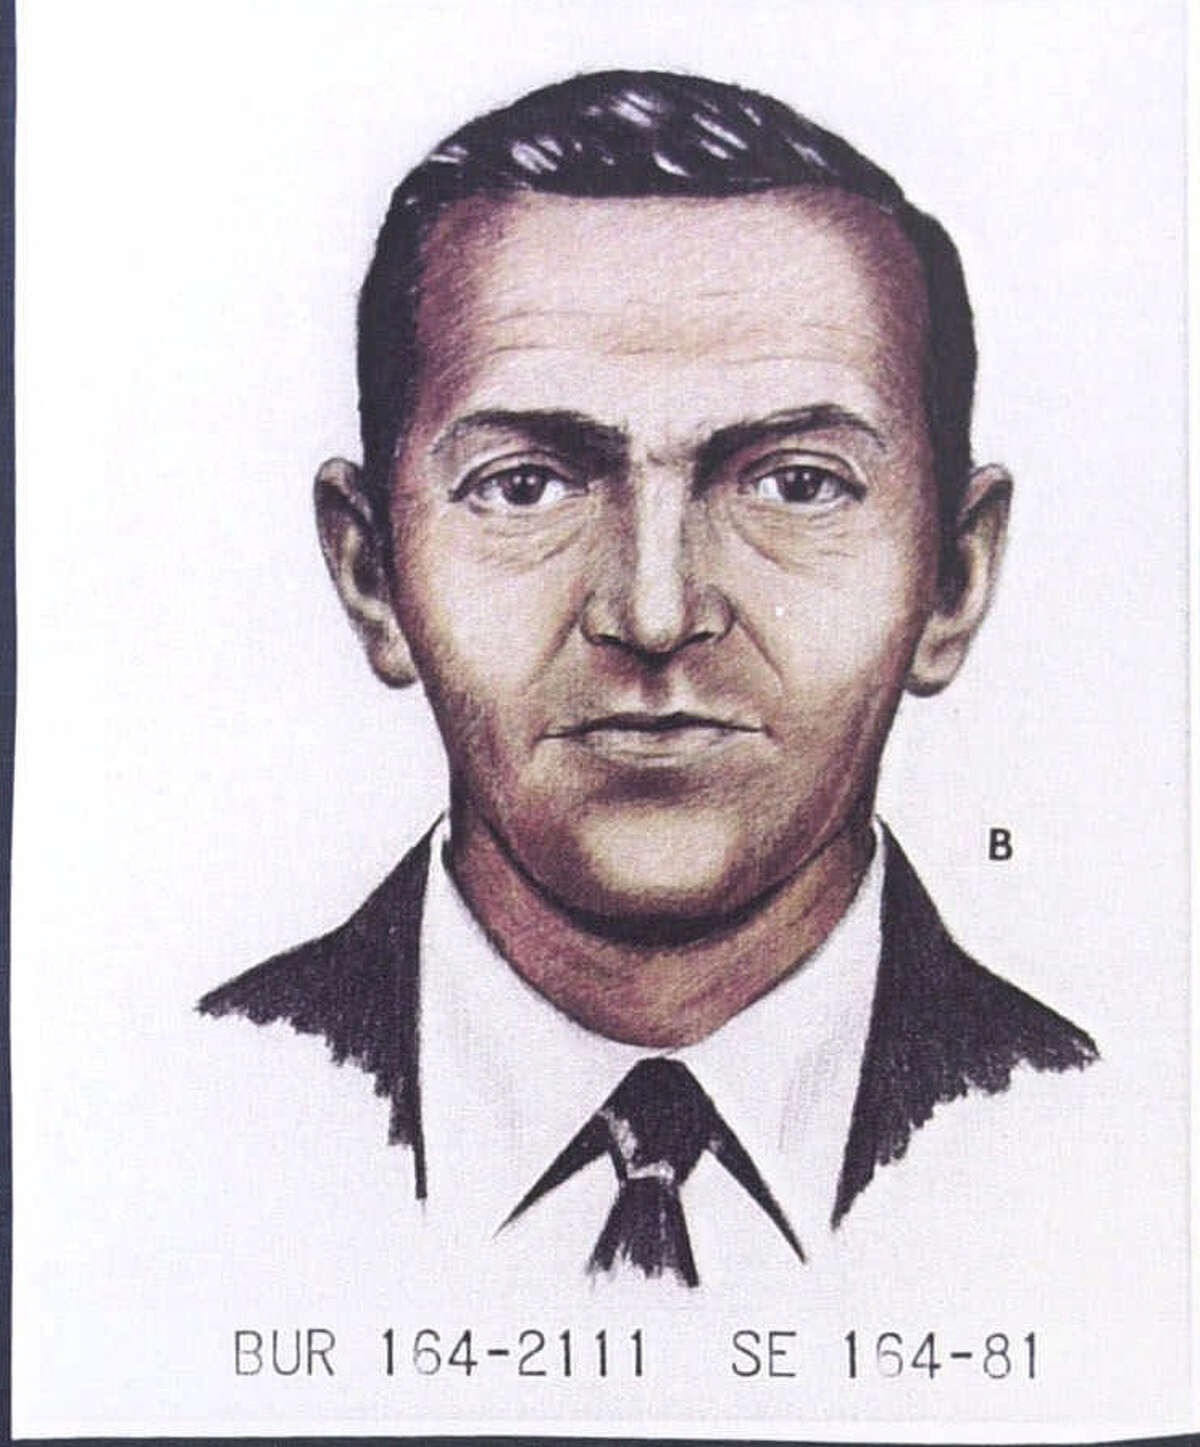 FILE--A 1981 FBI artist's rendition (top) shows D.B. Cooper as he looked in 1971 when he disappeared after parachuting from a skyjacked jetliner with $200,000 in ransom money. Jo Weber of Pace, Fla., claims that her late husband, Duane Weber, shown in a photo taken about 1977 (bottom) was Cooper. (AP Photo/Pensacola News Journal)